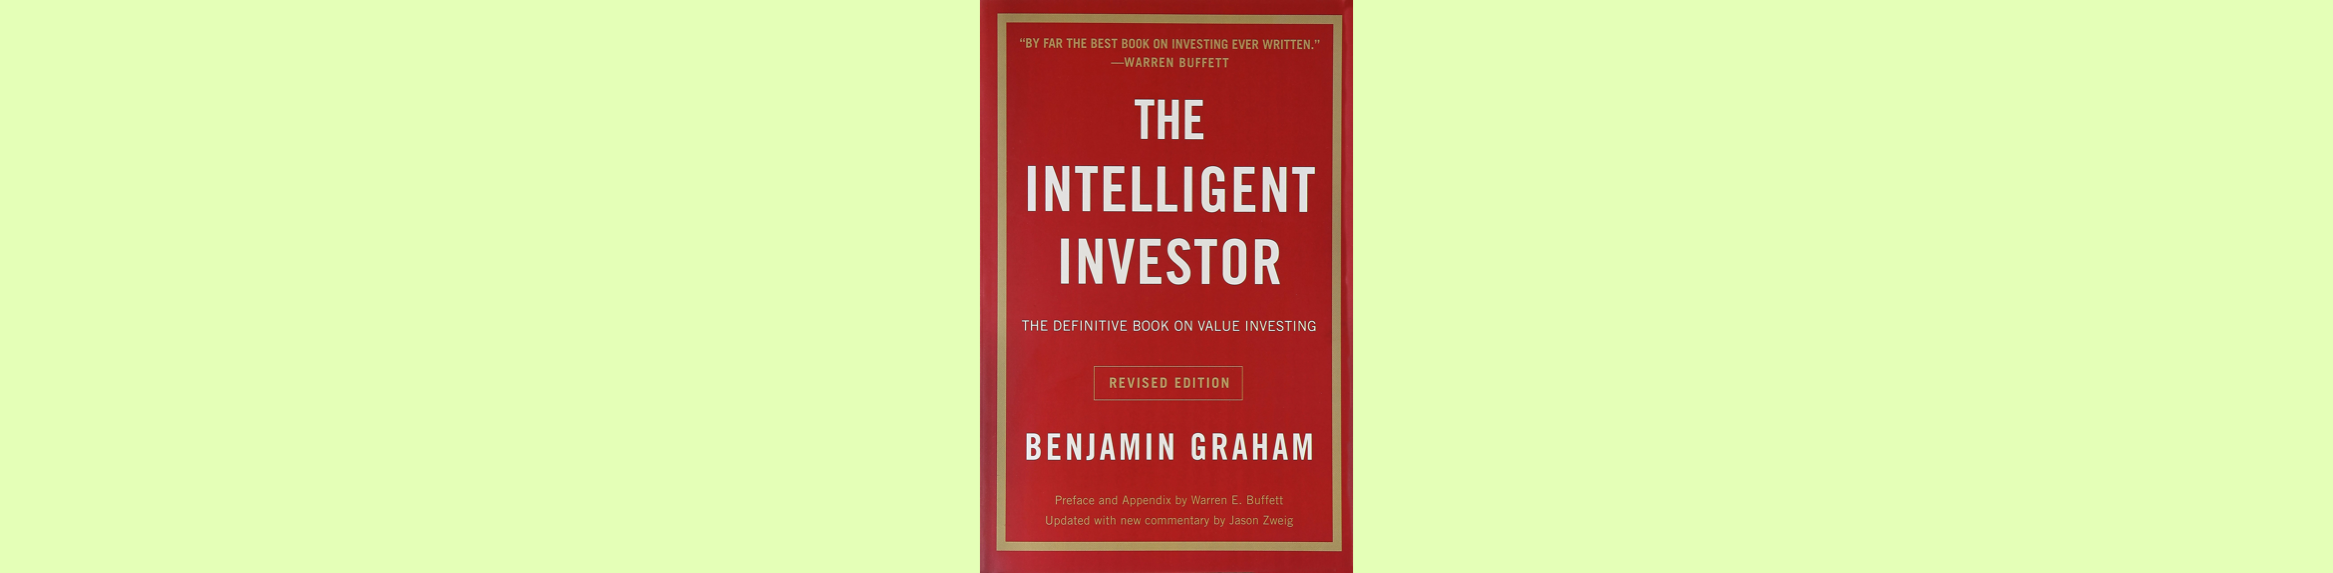 Top 18 Best Investing Books to Read for Every Investor (2021 List) The Intelligent Investor: The Definitive Book on Value Investing – Benjamin Graham